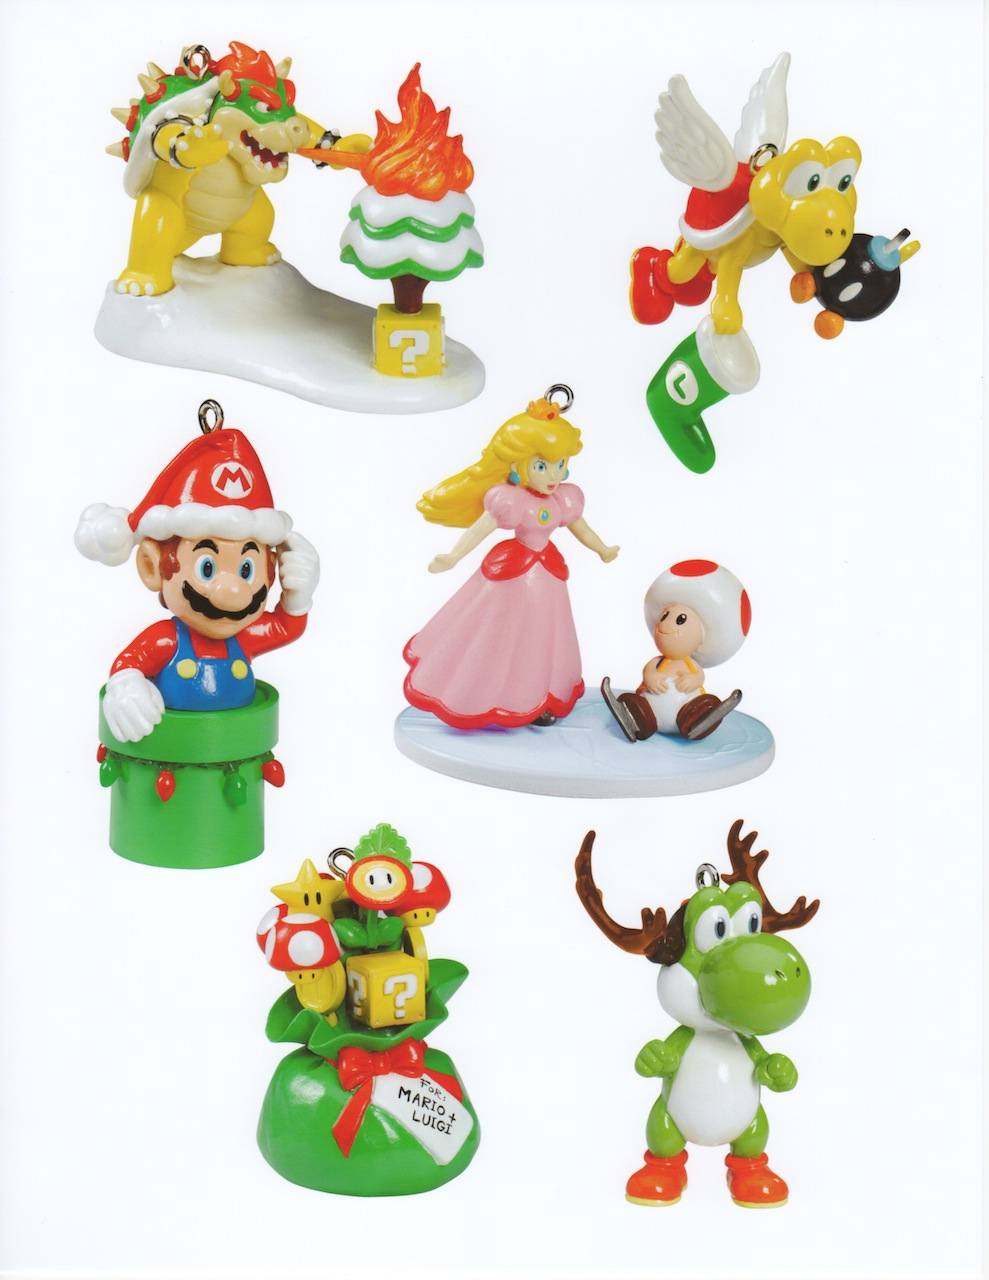 Nintendo Christmas.Nintendo Christmas Ornaments Moondevil Studio